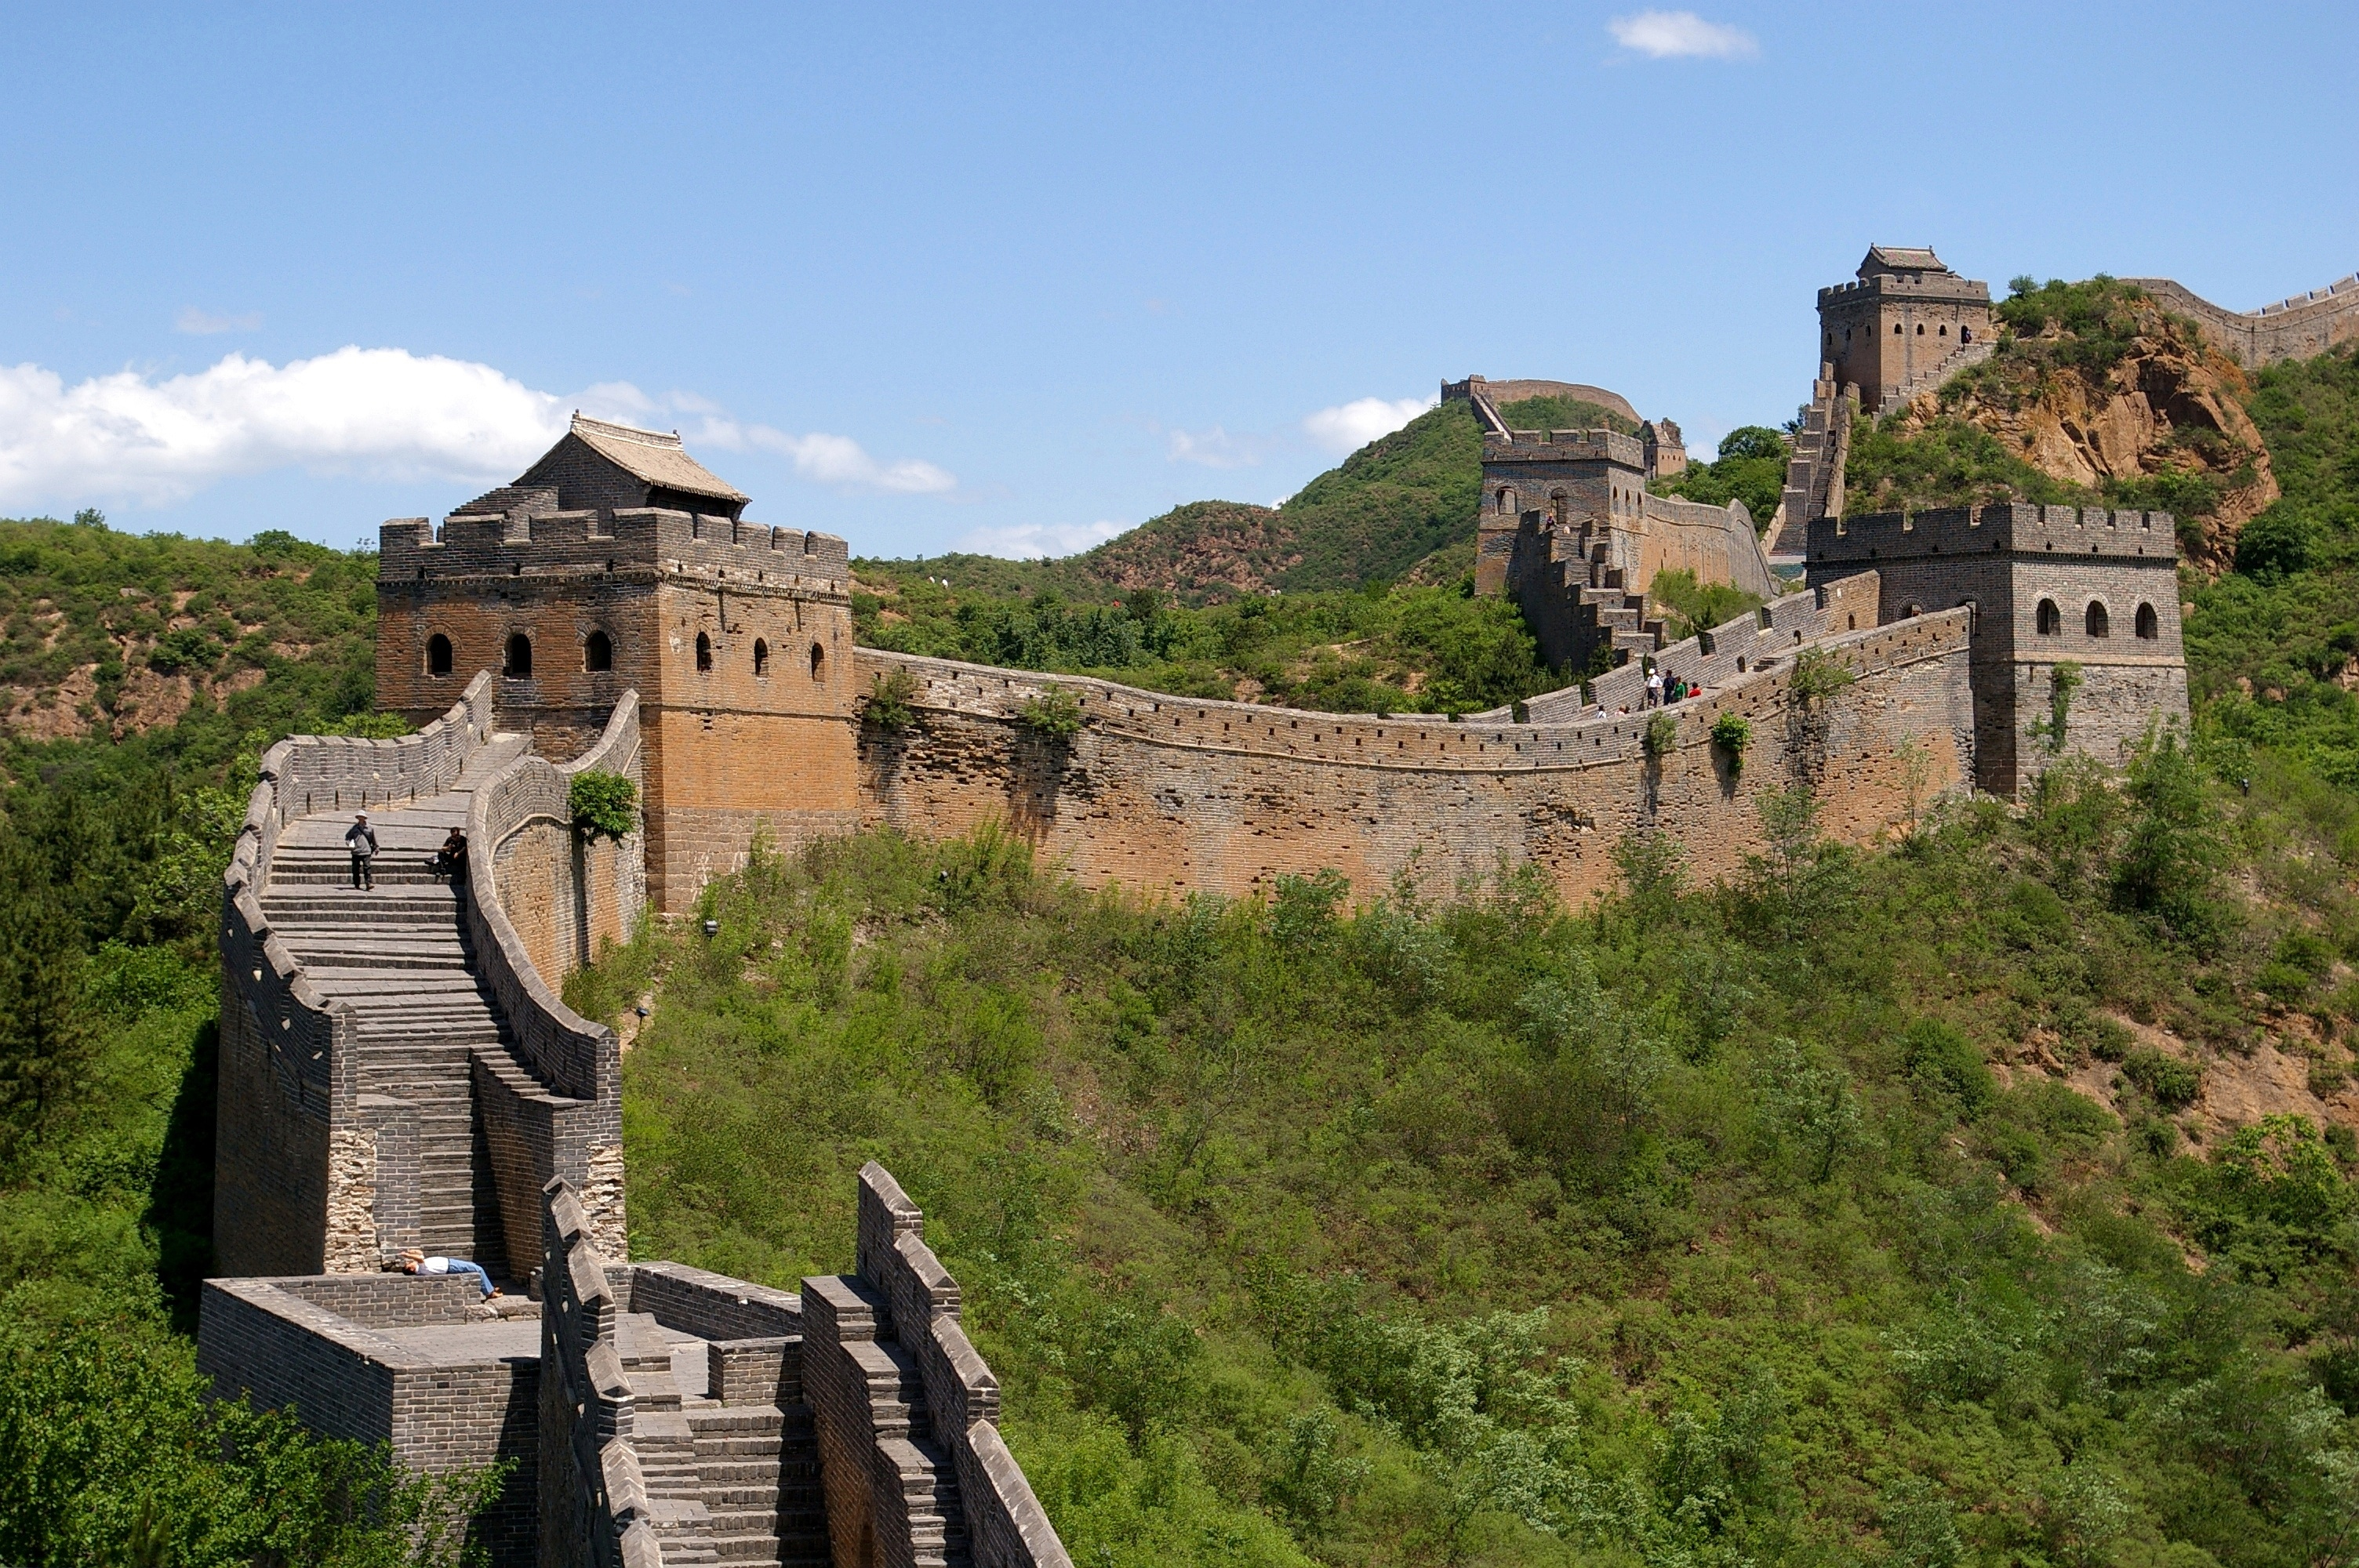 Photograph of the Great Wall of China in Jinshanling.